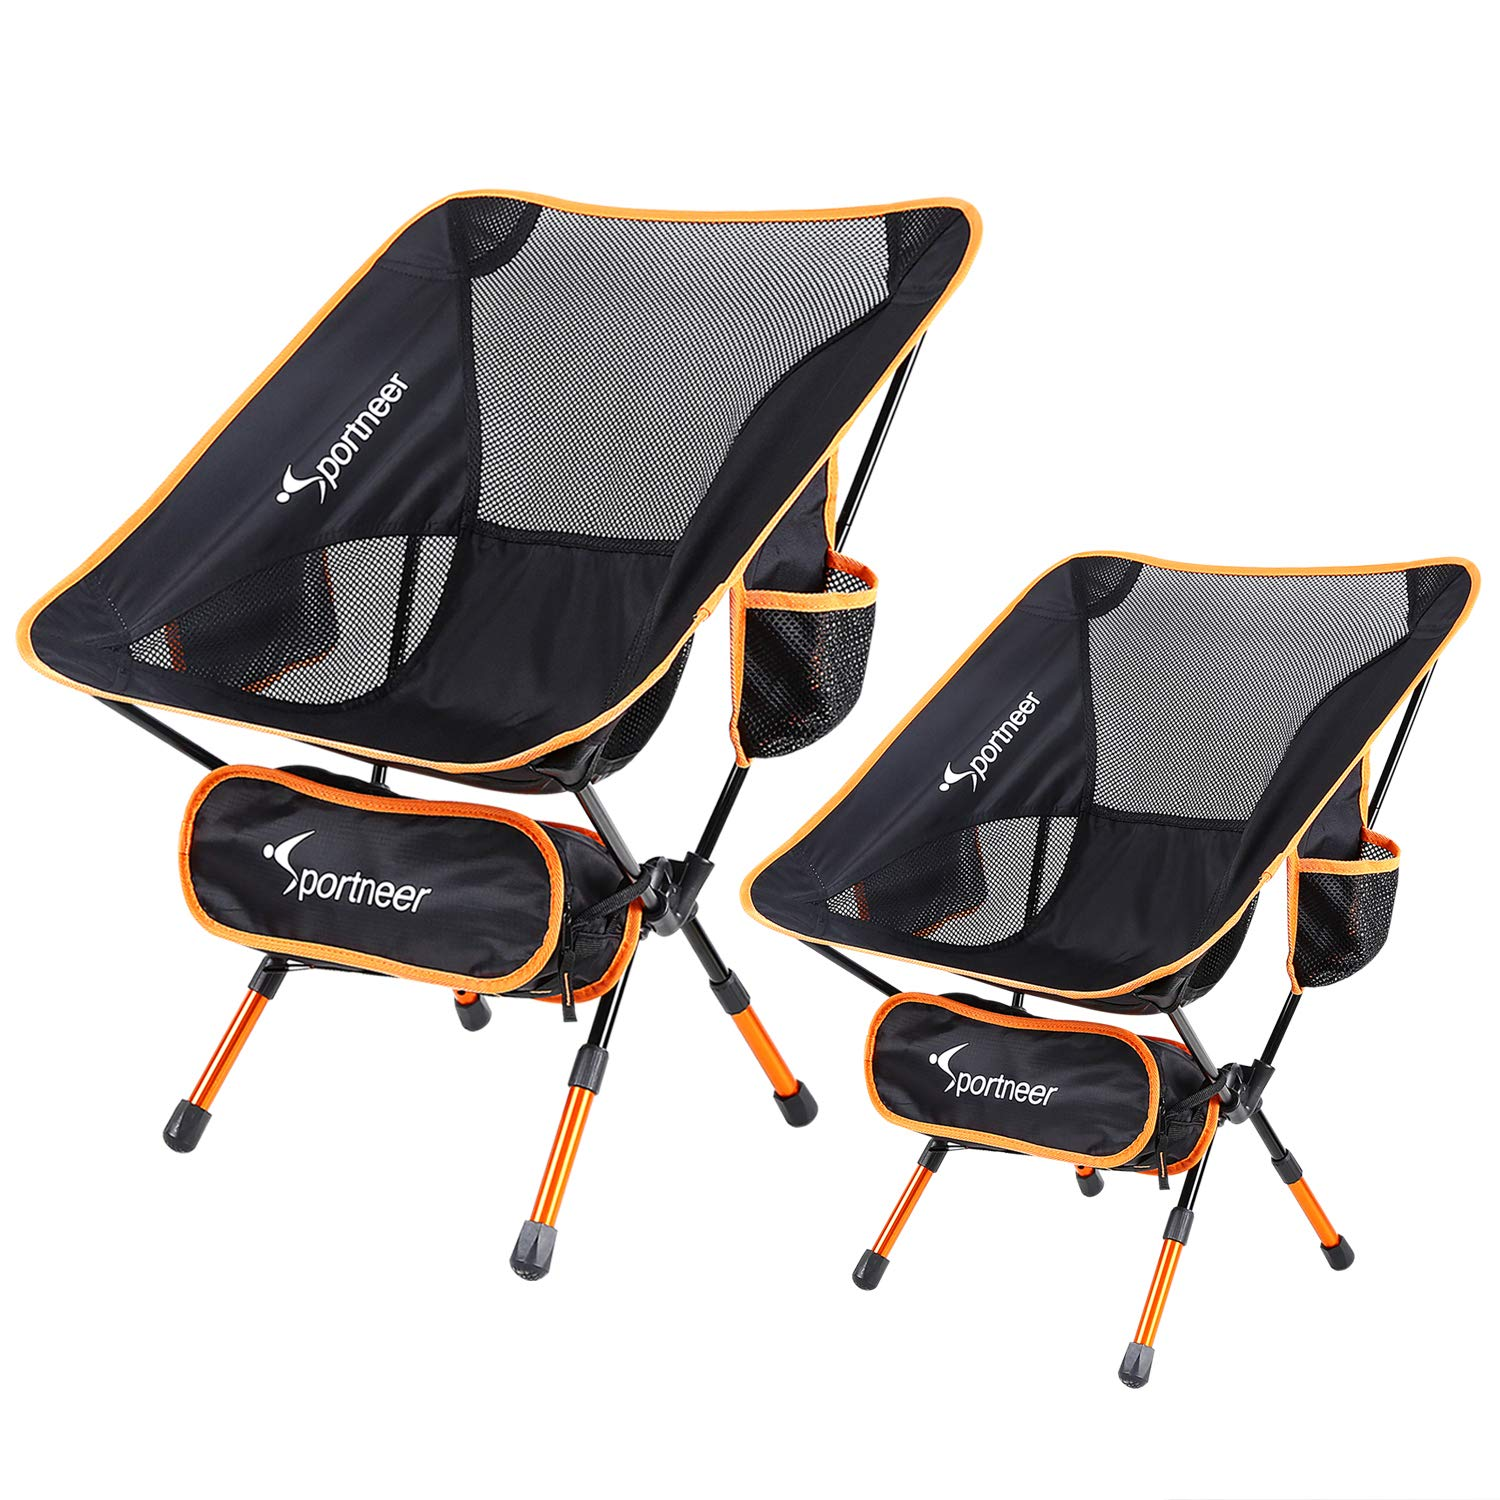 Ultralight Portable Folding Camping Chair, Sportneer Backpacking Chairs, Compact and Heavy Duty Outdoors, BBQ, Beach, Travel, Picnic, Festival with Storage Bags and Carry Bag